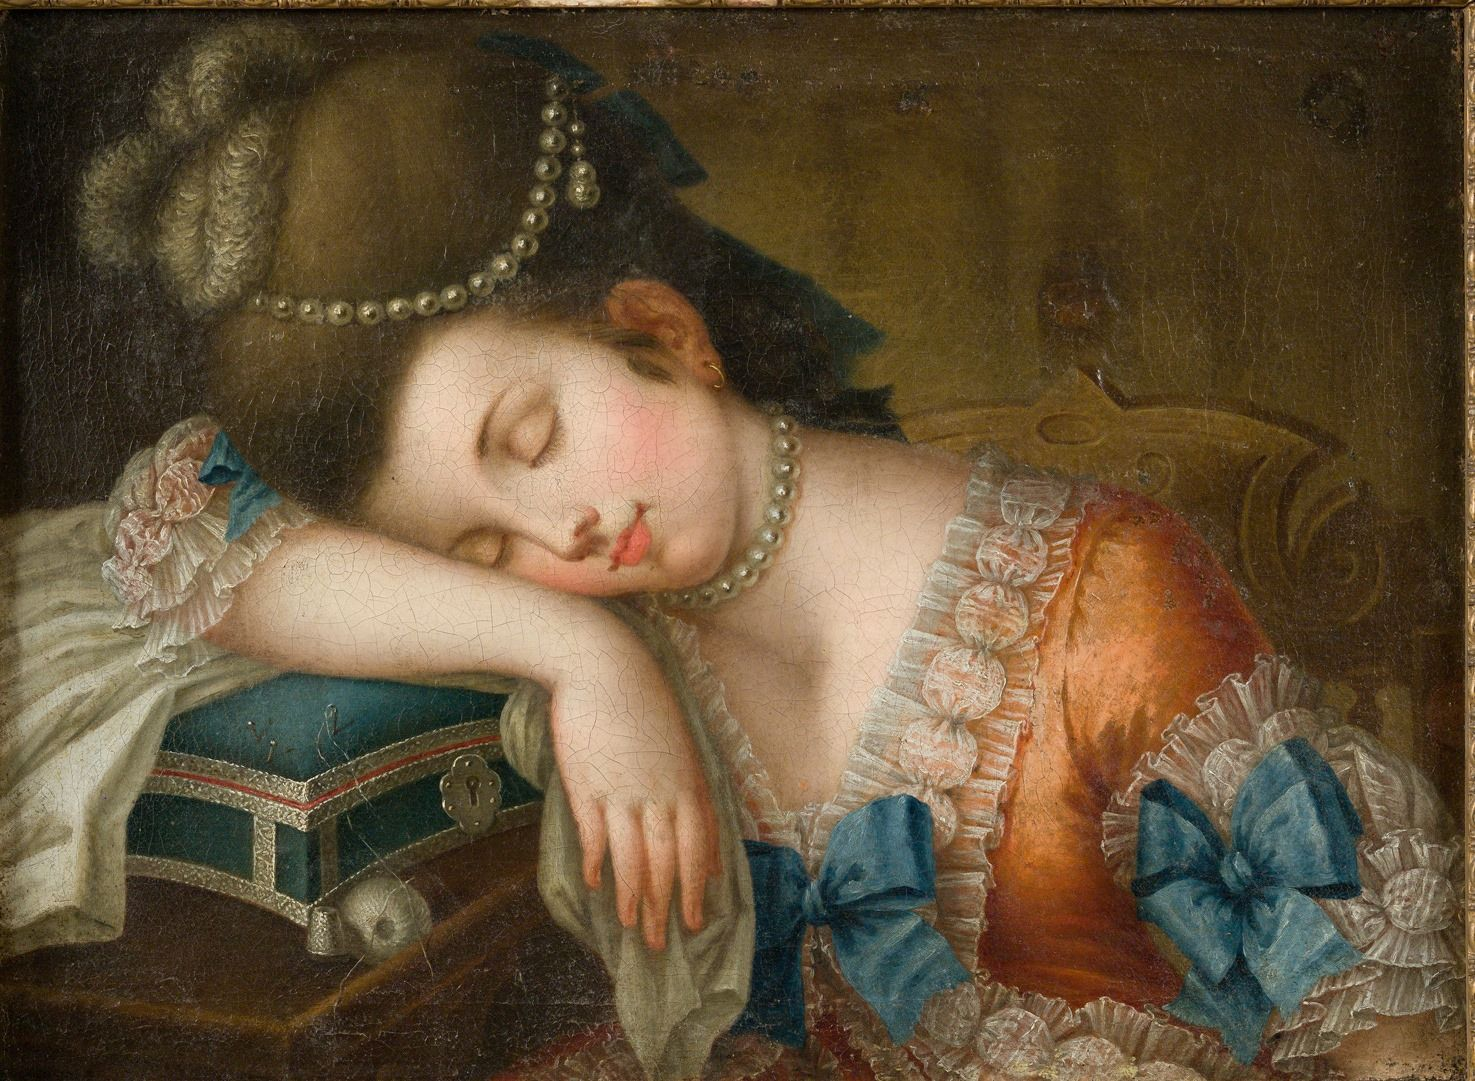 best images about th century museums portrait young w sleeping her sewing kit c 1780 unknown artist century art ladies18th